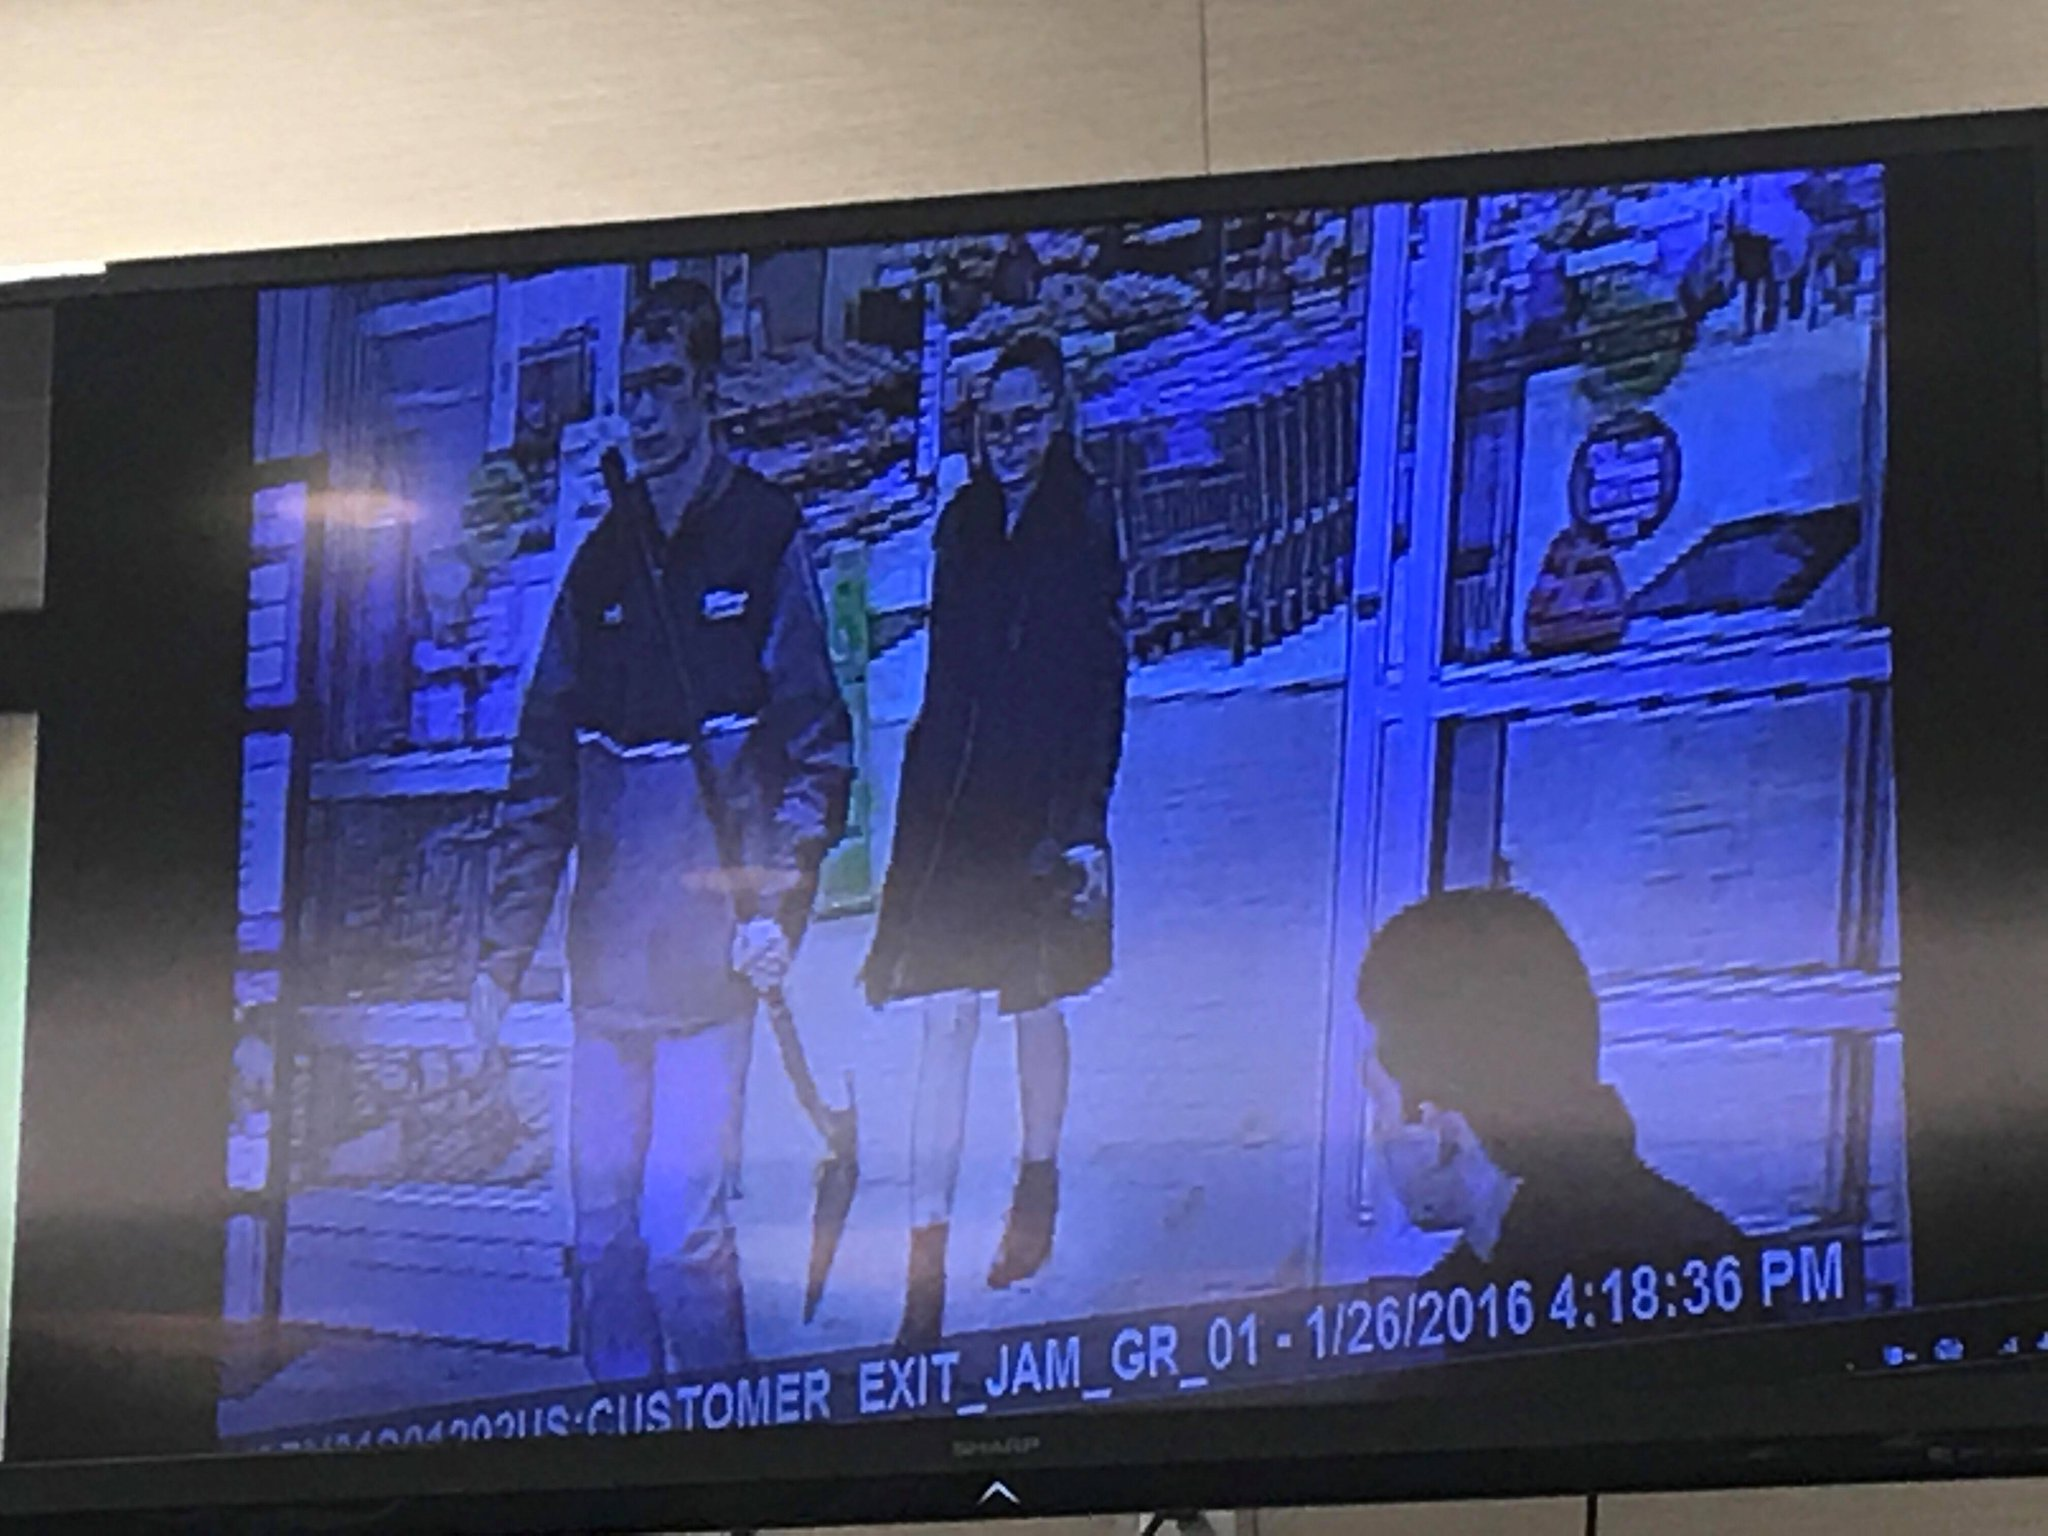 Detective Twigger testified that these pictures are from the Walmart in Christiansburg. They show Eisenhauer and Natalie Keepers going into the store and buying a shovel. They are also on camera paying cash for the shovel.